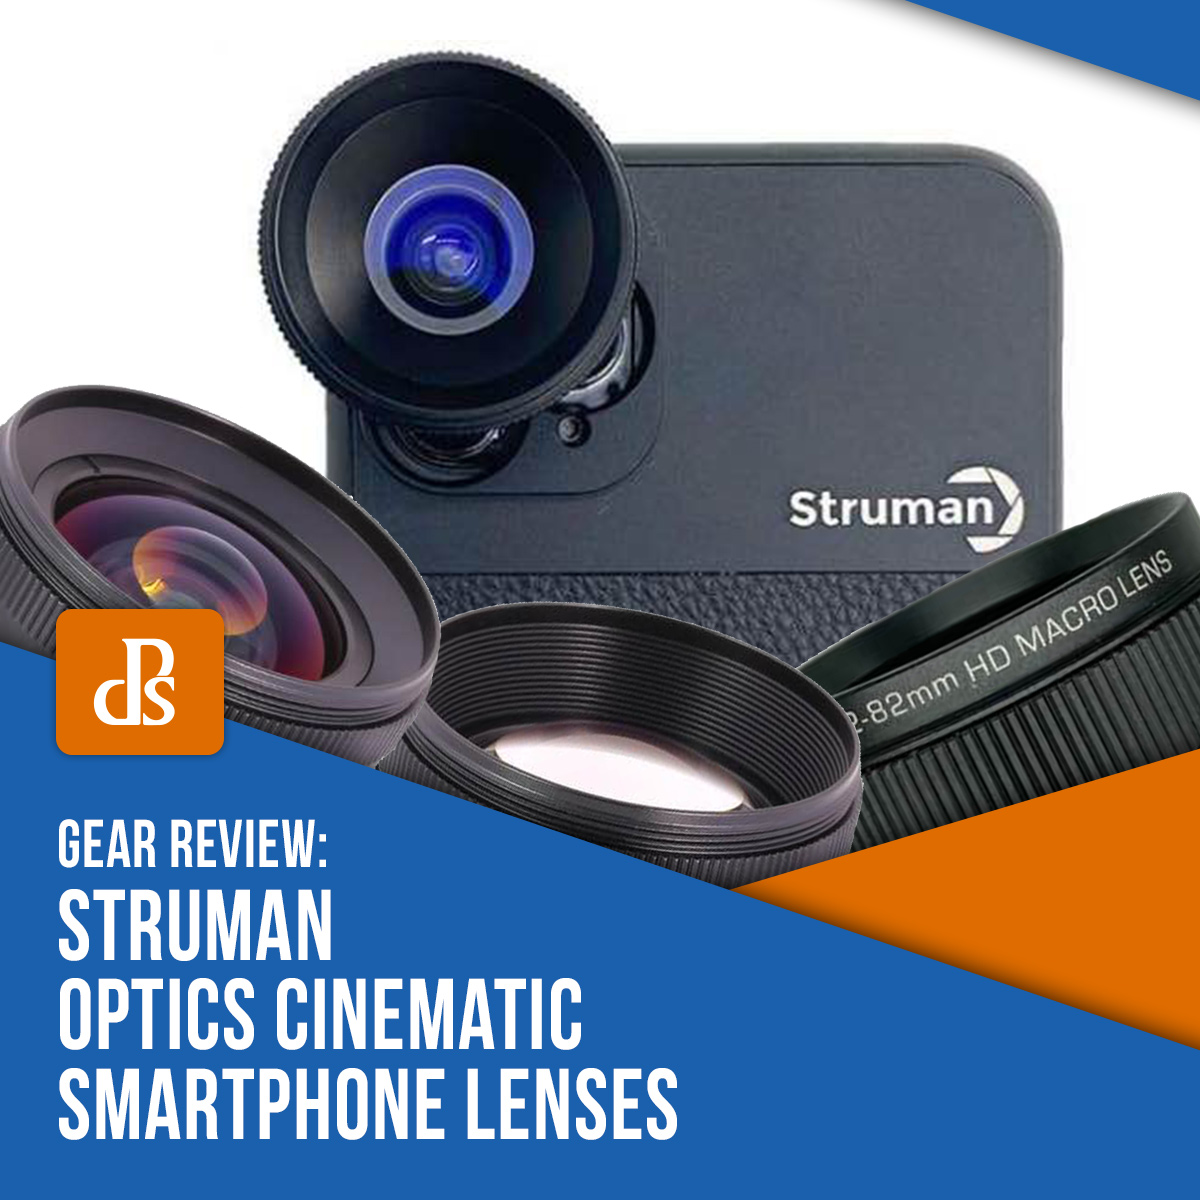 Struman Optics Cinematic lenses for smartphones review